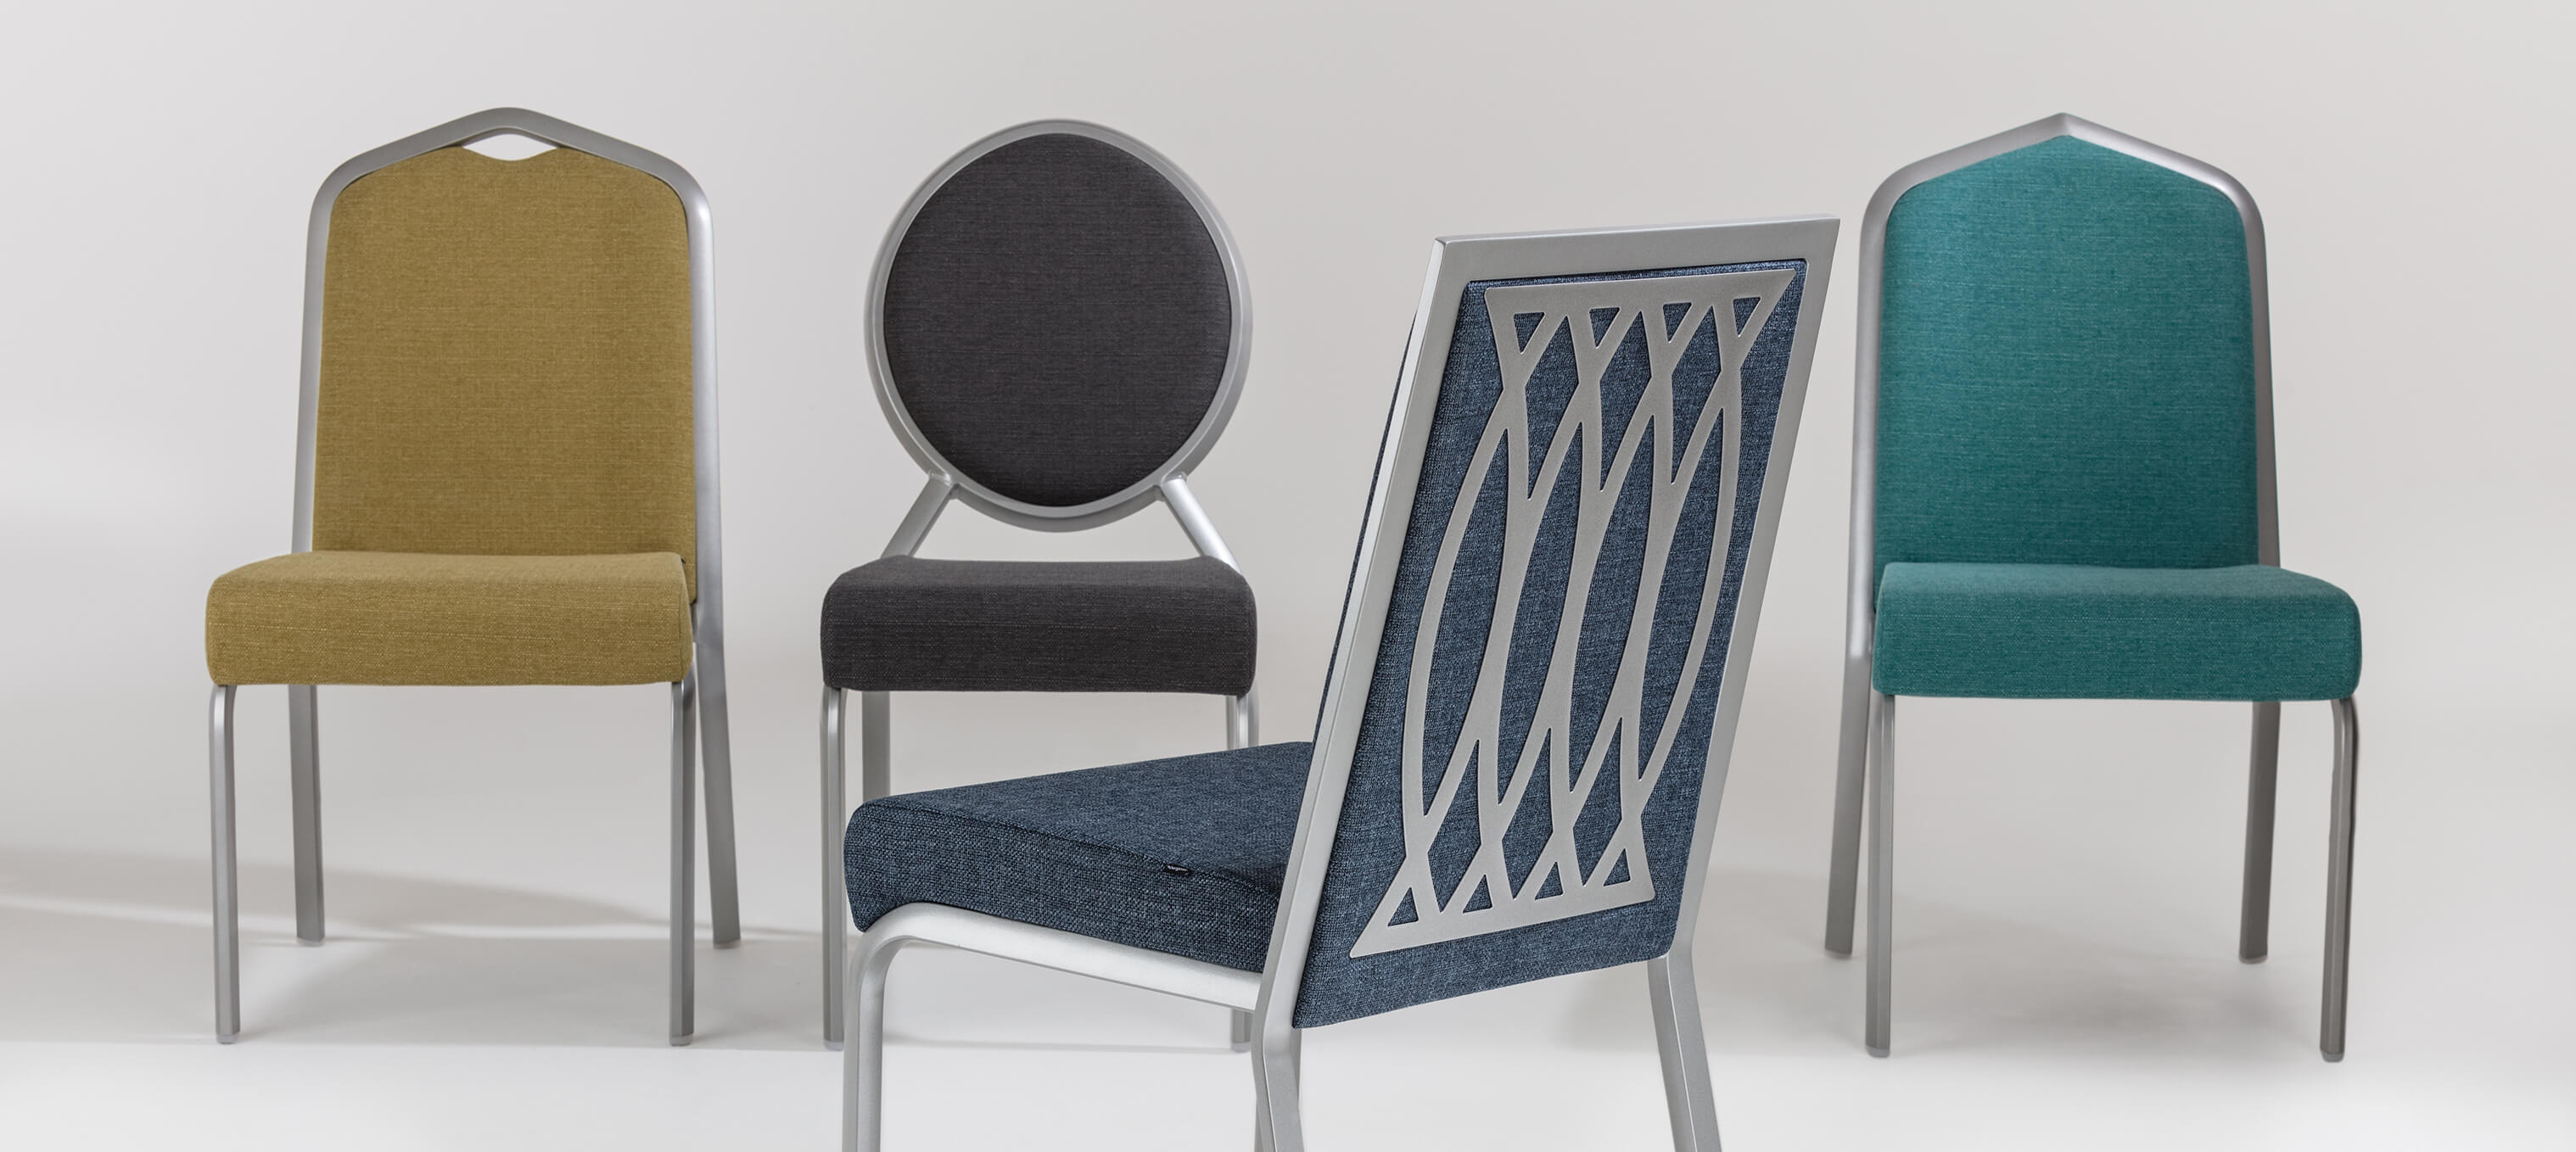 Simbia Chair Range